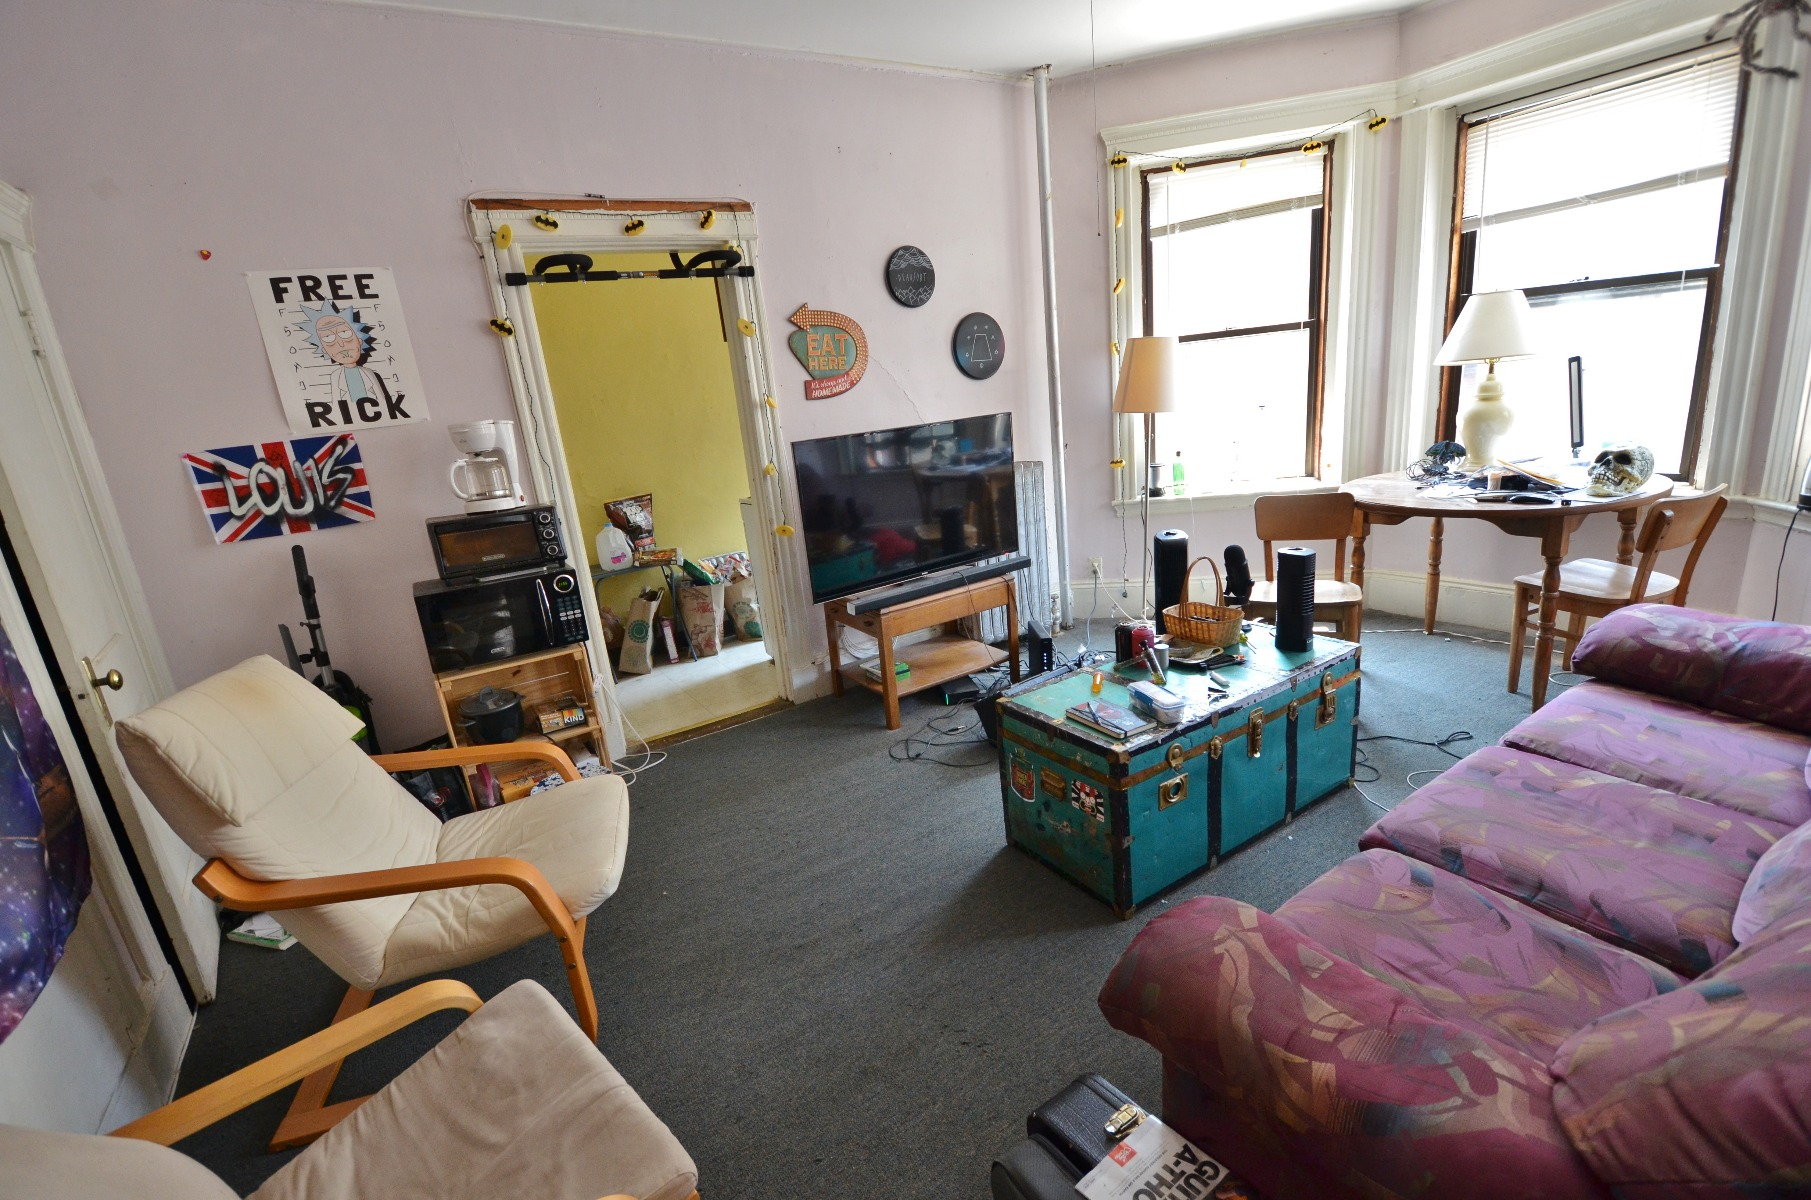 AVAIL 9/1 - HUGE BRIGHT AMAZING 2 BR ON HEMENWAY ST *MUST SEE*